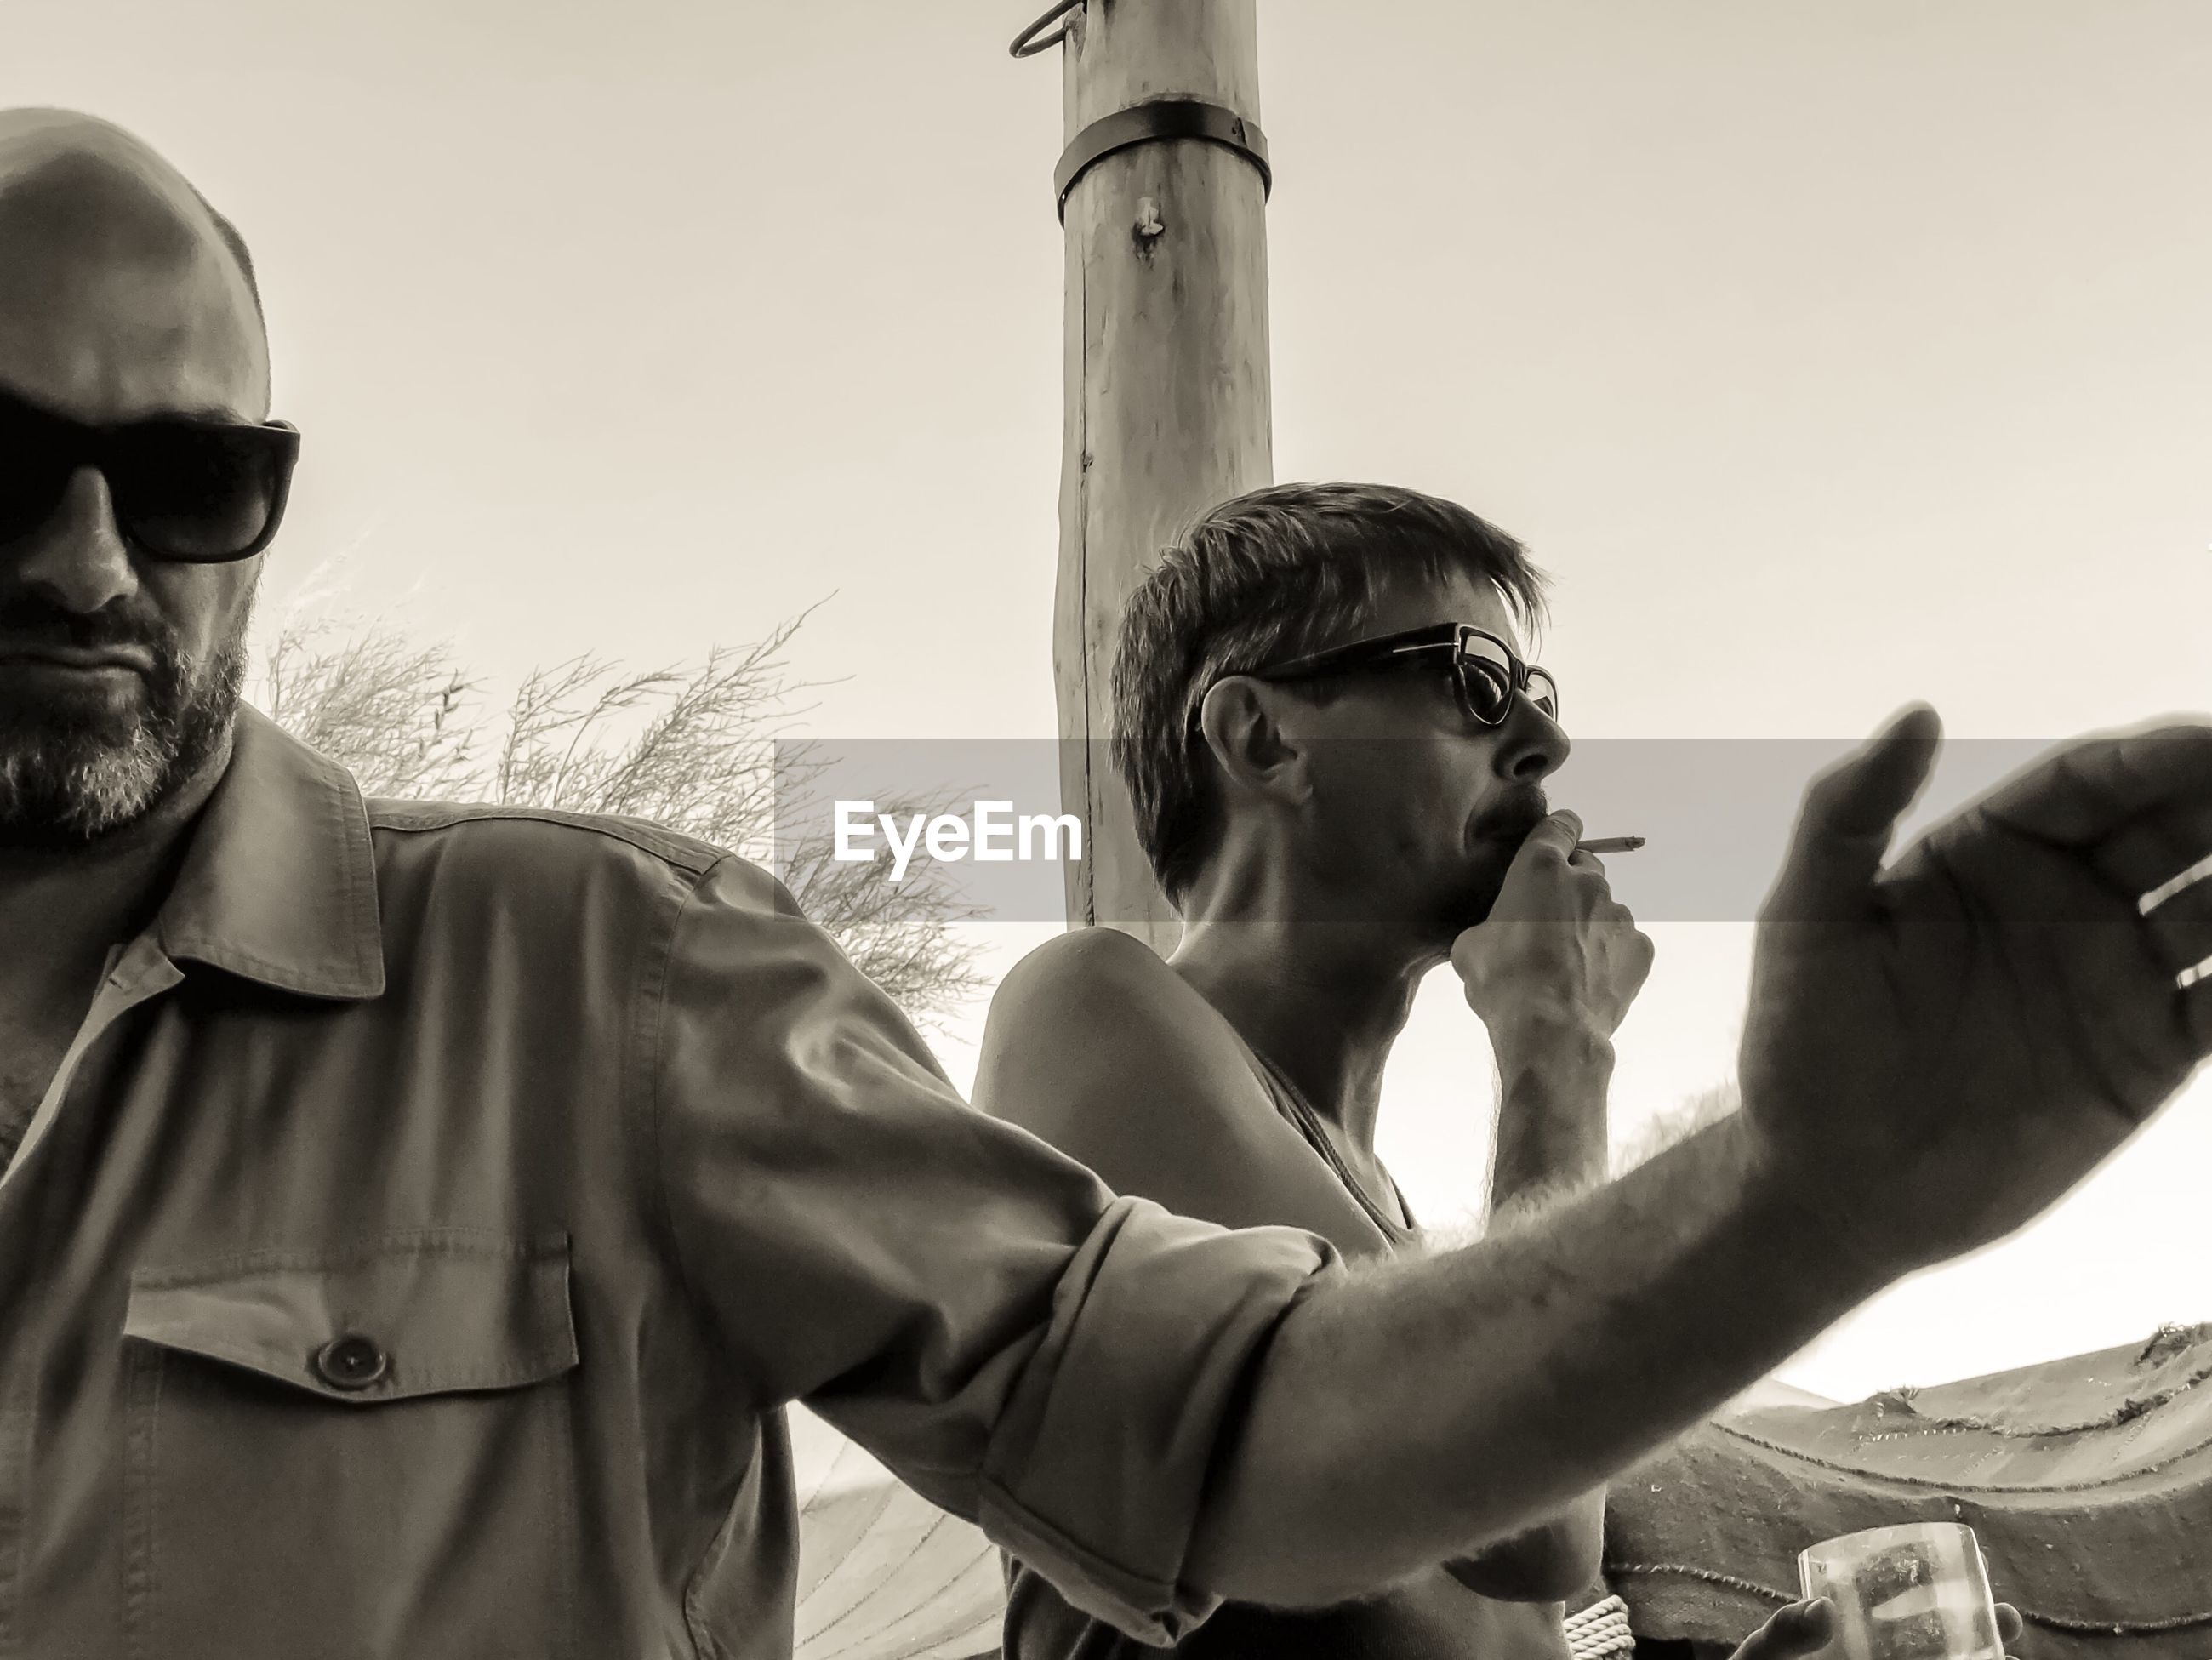 Man smoking cigarette with friend in foreground